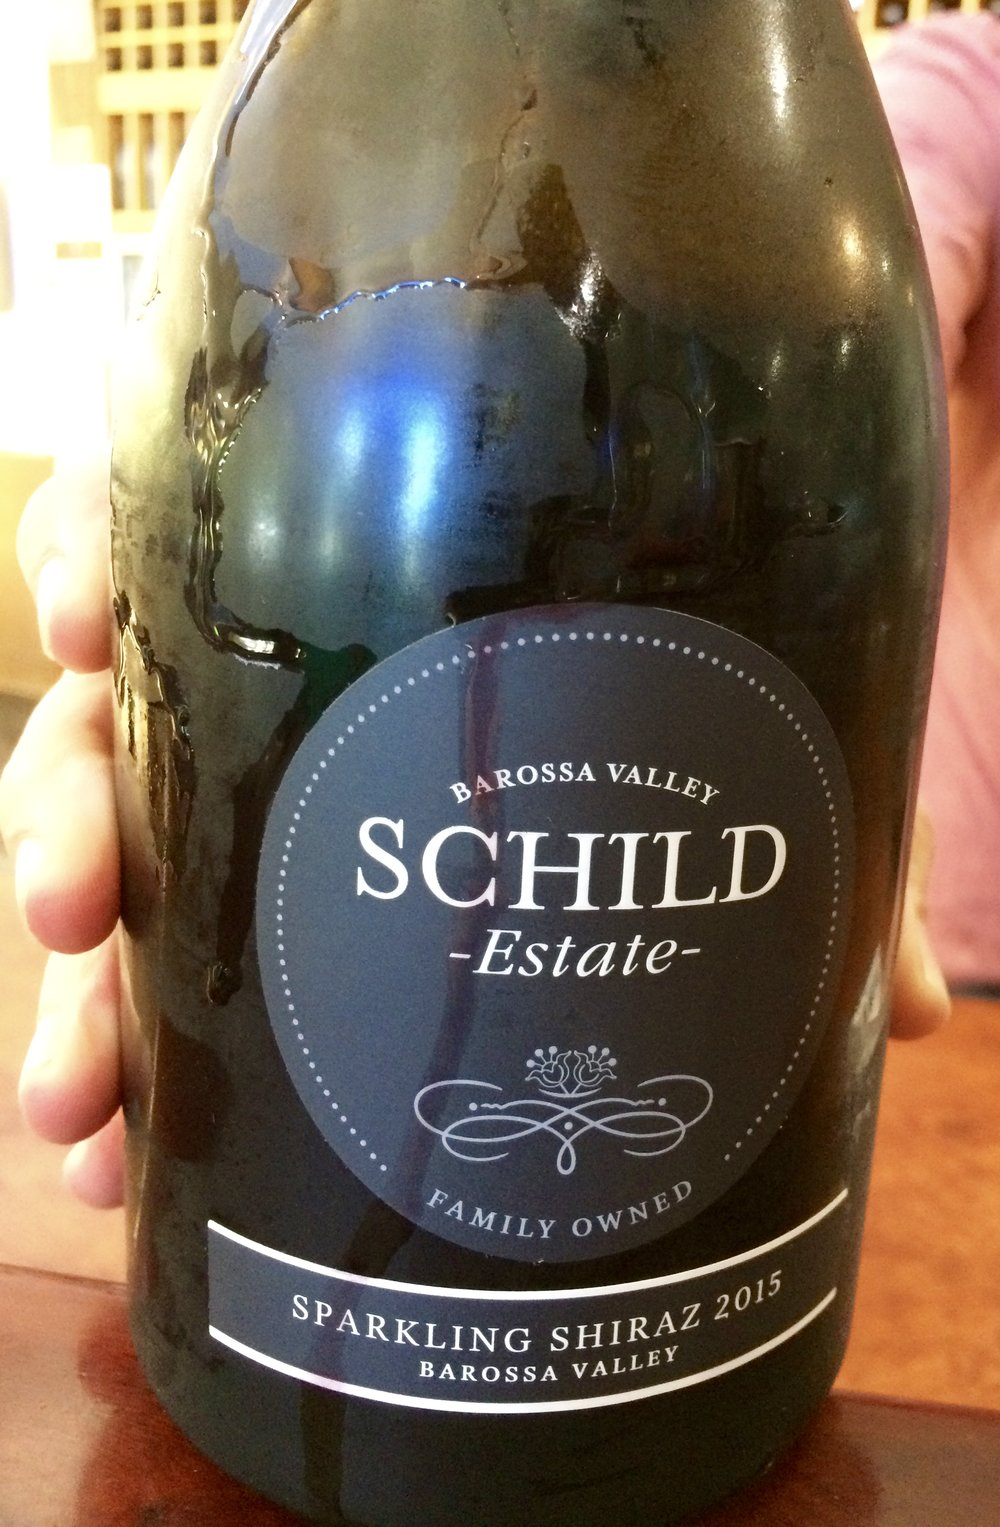 Sparkling Shiraz!! - From Schild Family Estates. An interesting sparkling wine that had quite a complex depth to it. Red fruits, dark cherries, hint of chocolate, cinnamon, cloves, and quite surprisingly balanced with a medium to long finish. I was tempted to bring a bottle of this home but didn't because I was holding out on purchasing a typical yummy Shiraz from Barossa Valley. If you're visiting Barossa Valley and visiting this cellar door, buy a bottle of this interesting sparkling Shiraz. I regret not purchasing a bottle of this.